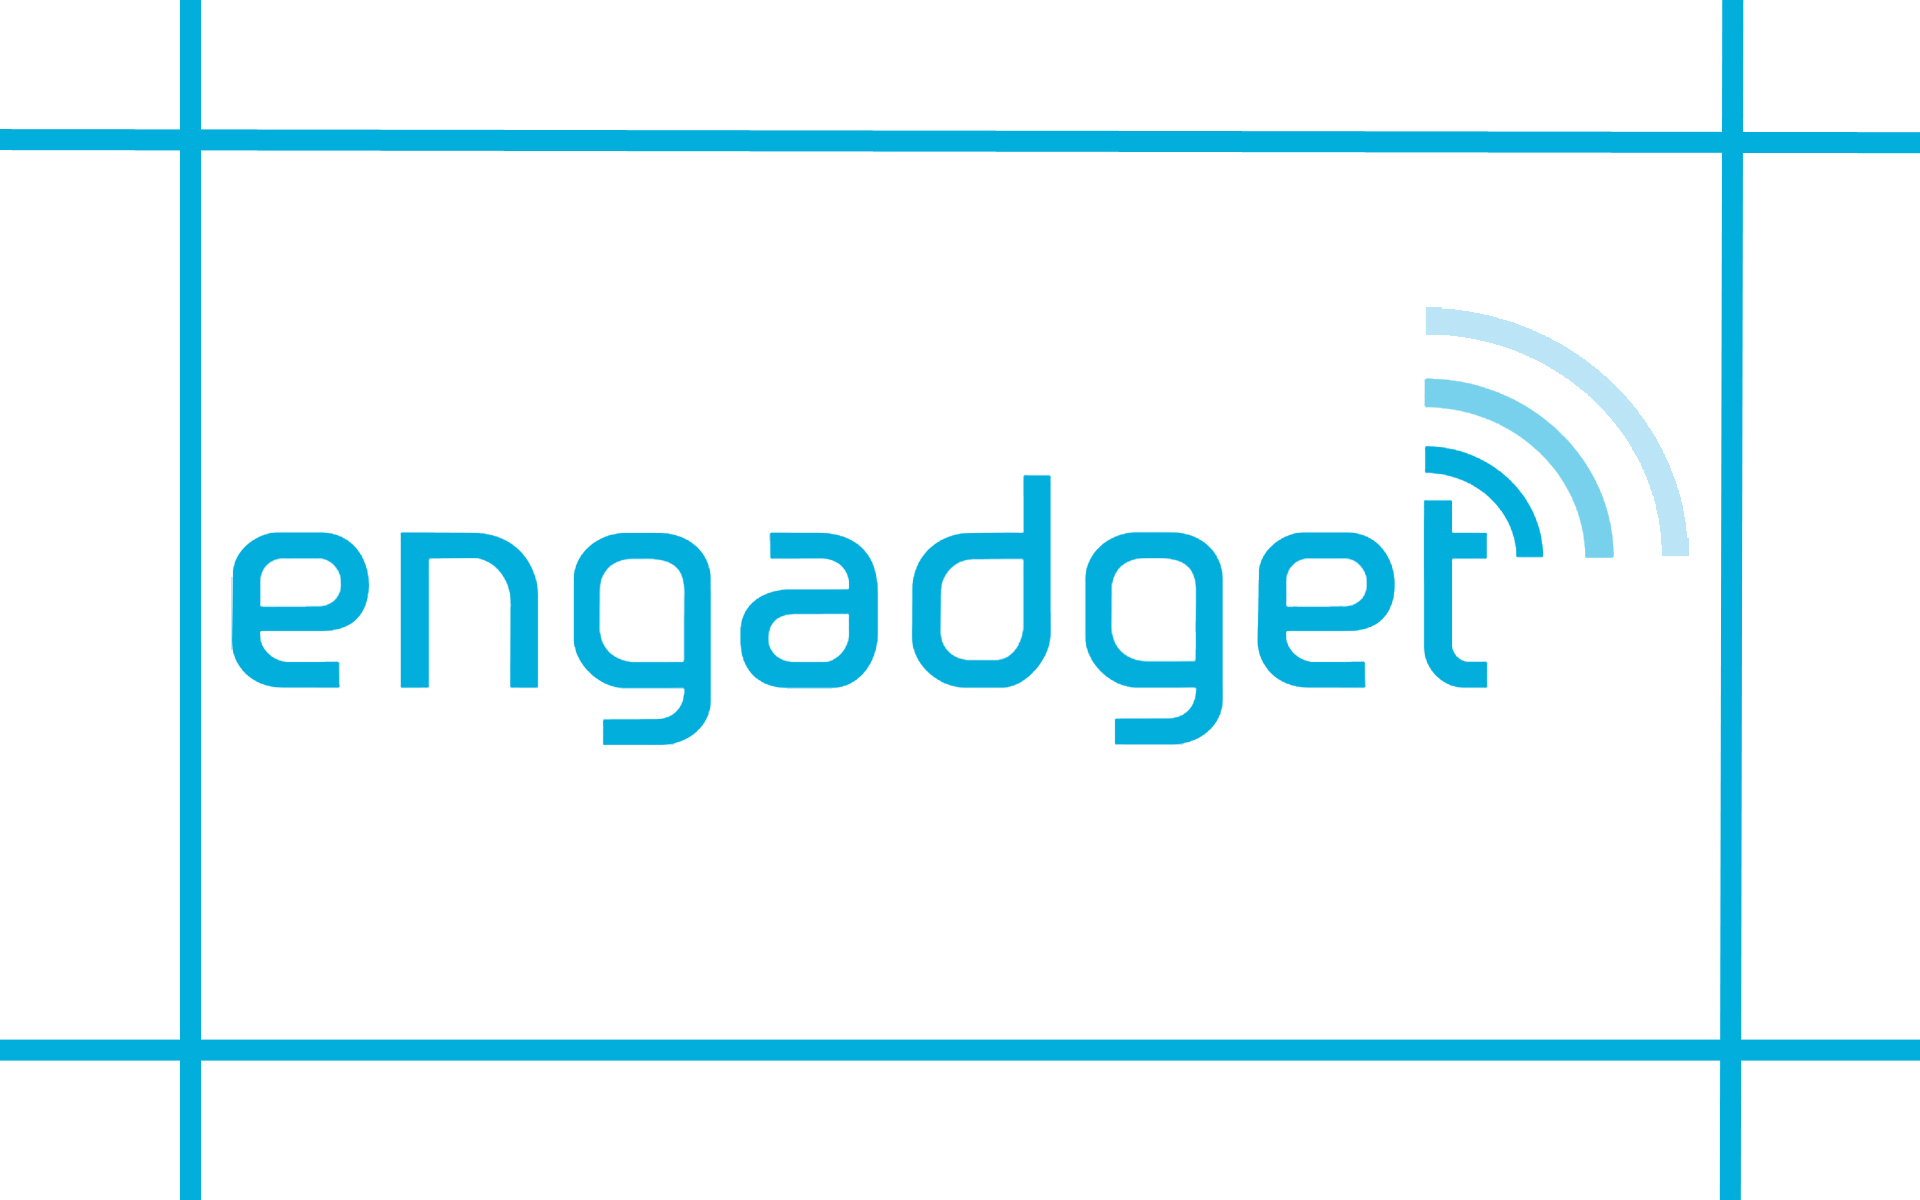 Engadget Wallpapers & Photo